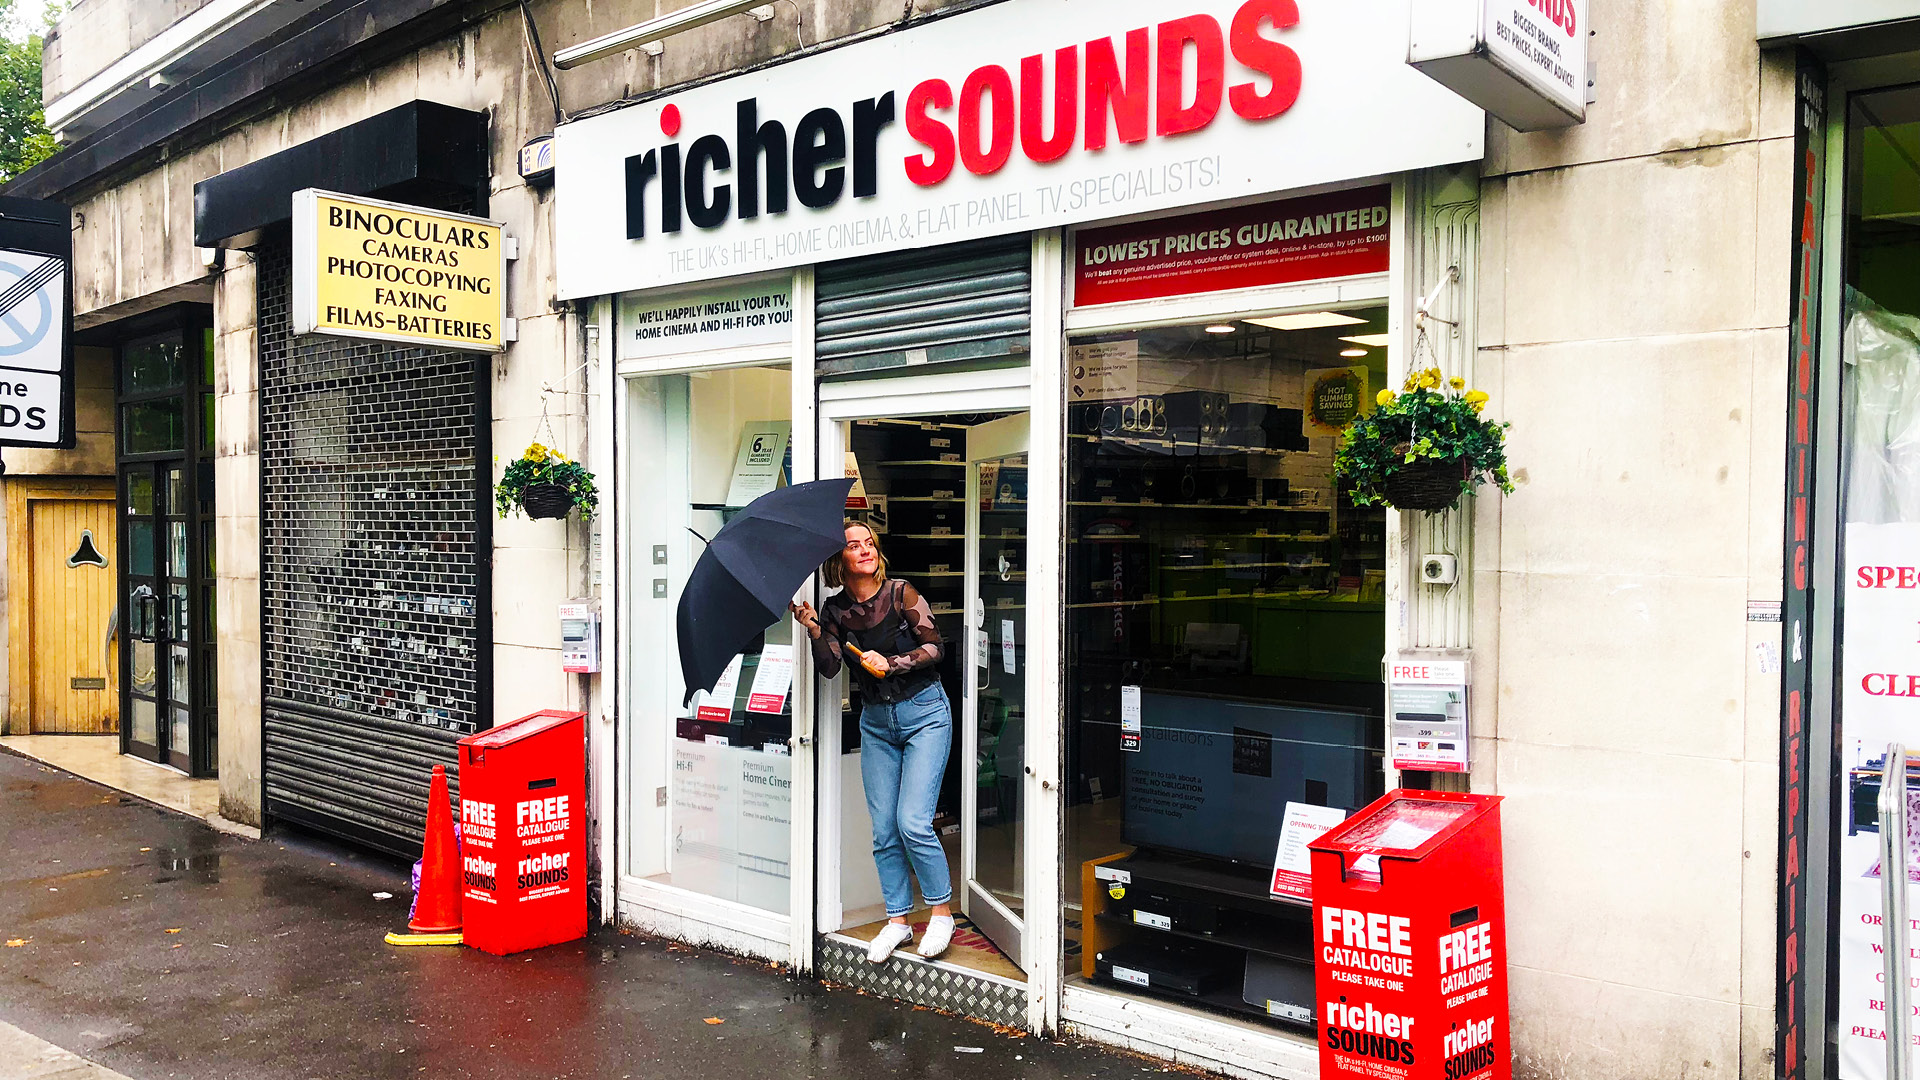 Quinine_Design_Richer_Sounds1